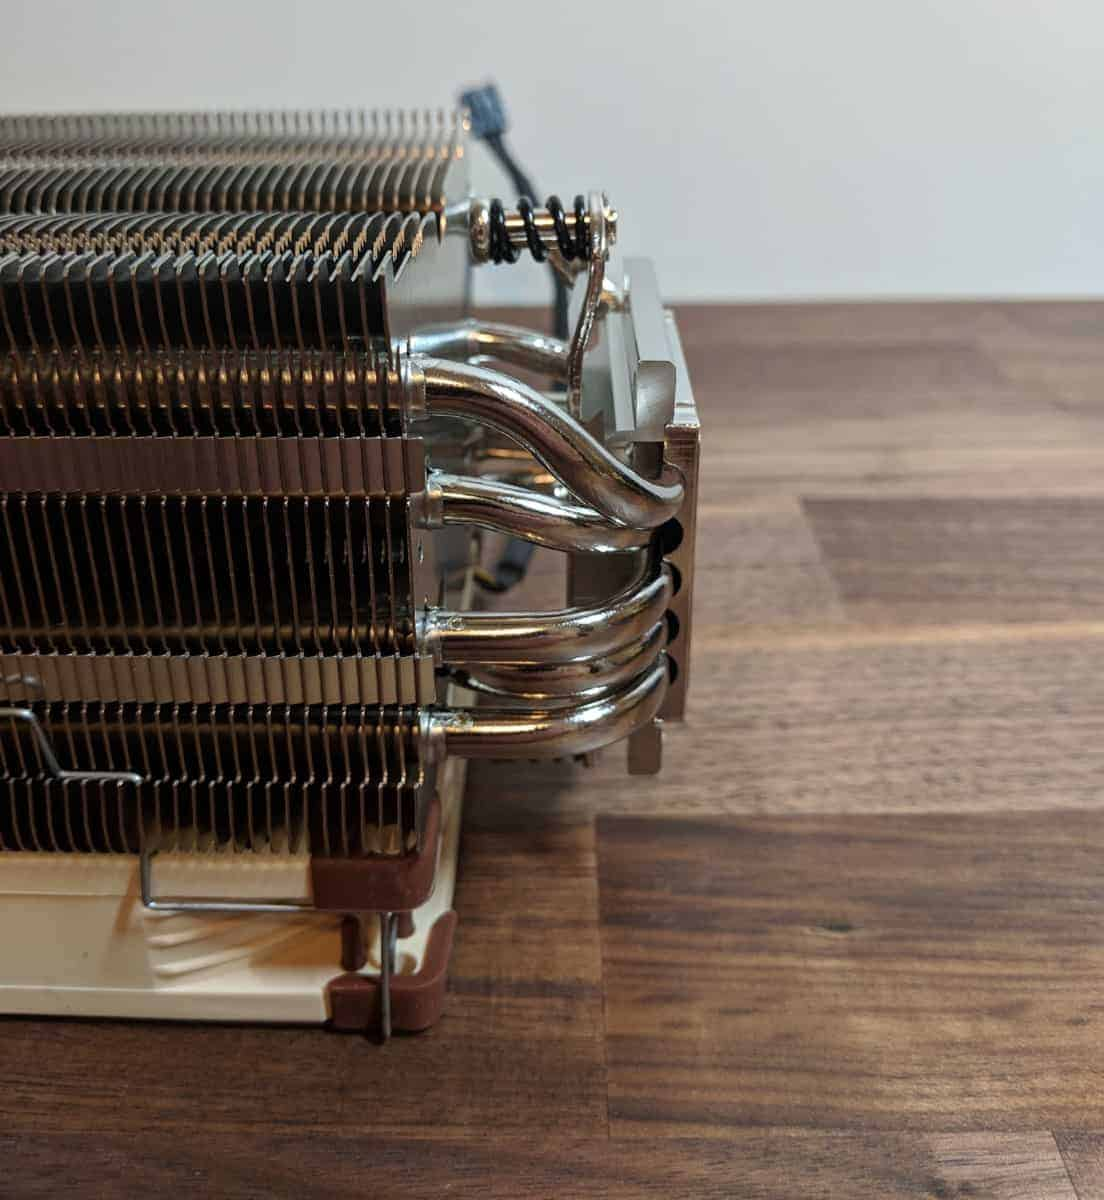 Noctua-U9S-Photos-04 Noctua U9S Review